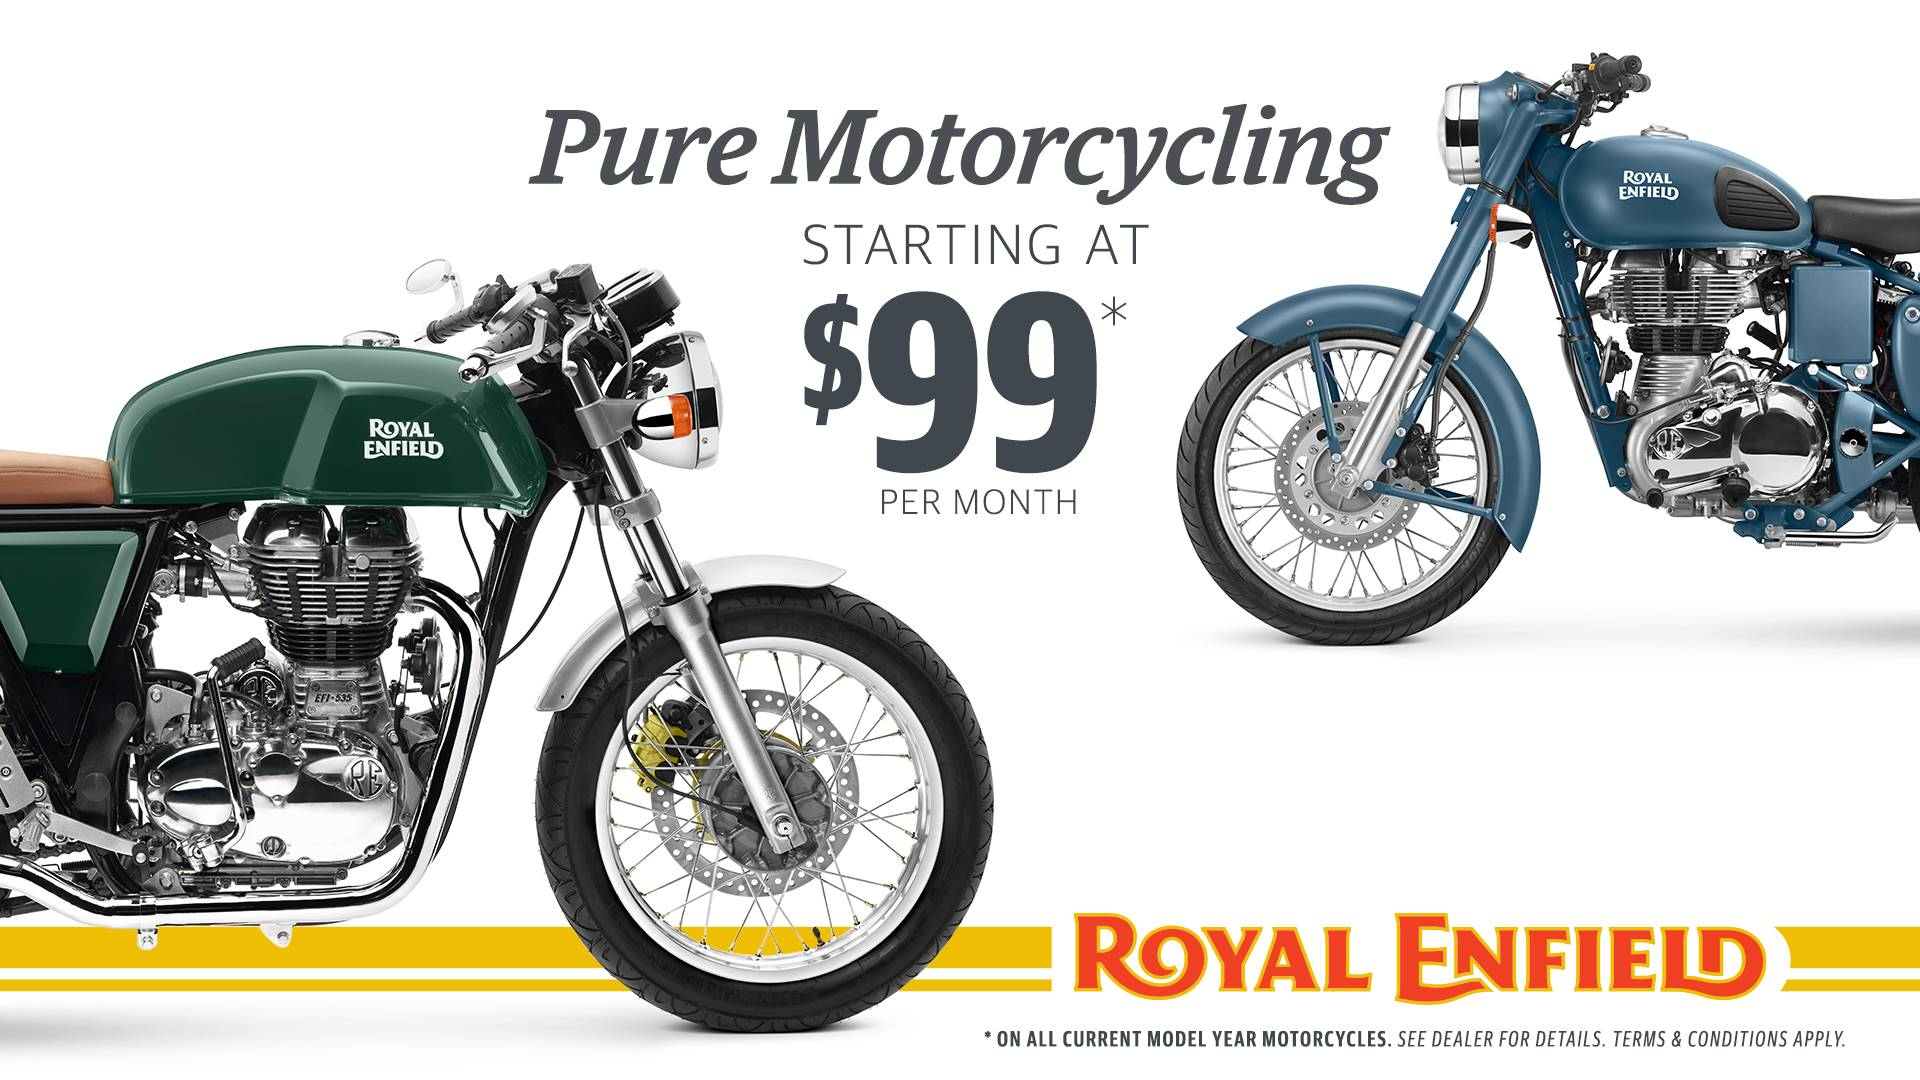 Royal Enfield - Pure Motorcycling Event